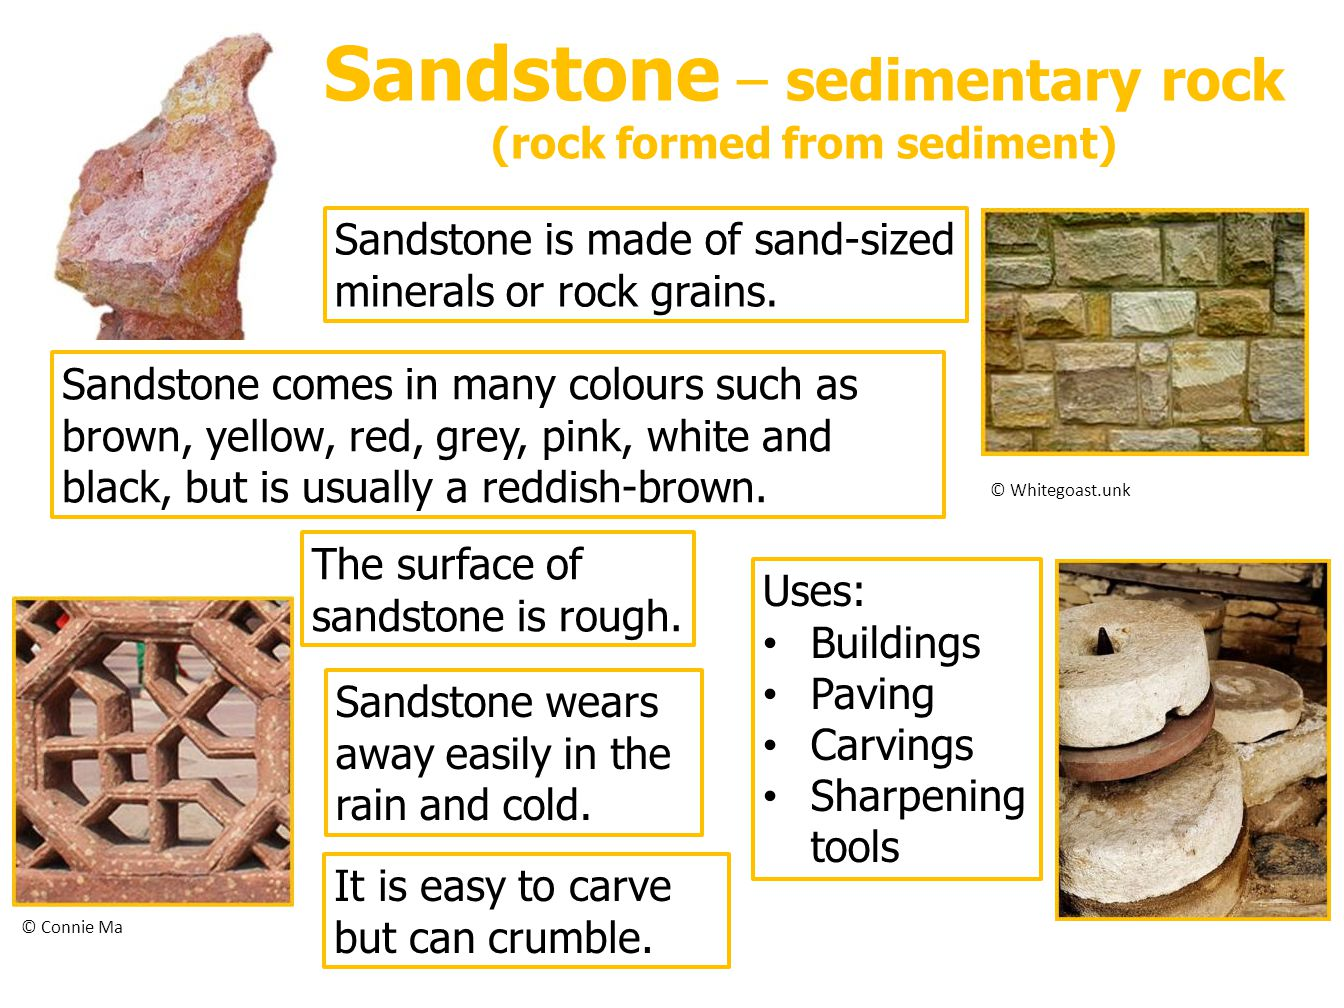 Sandstone – sedimentary rock (rock formed from sediment)